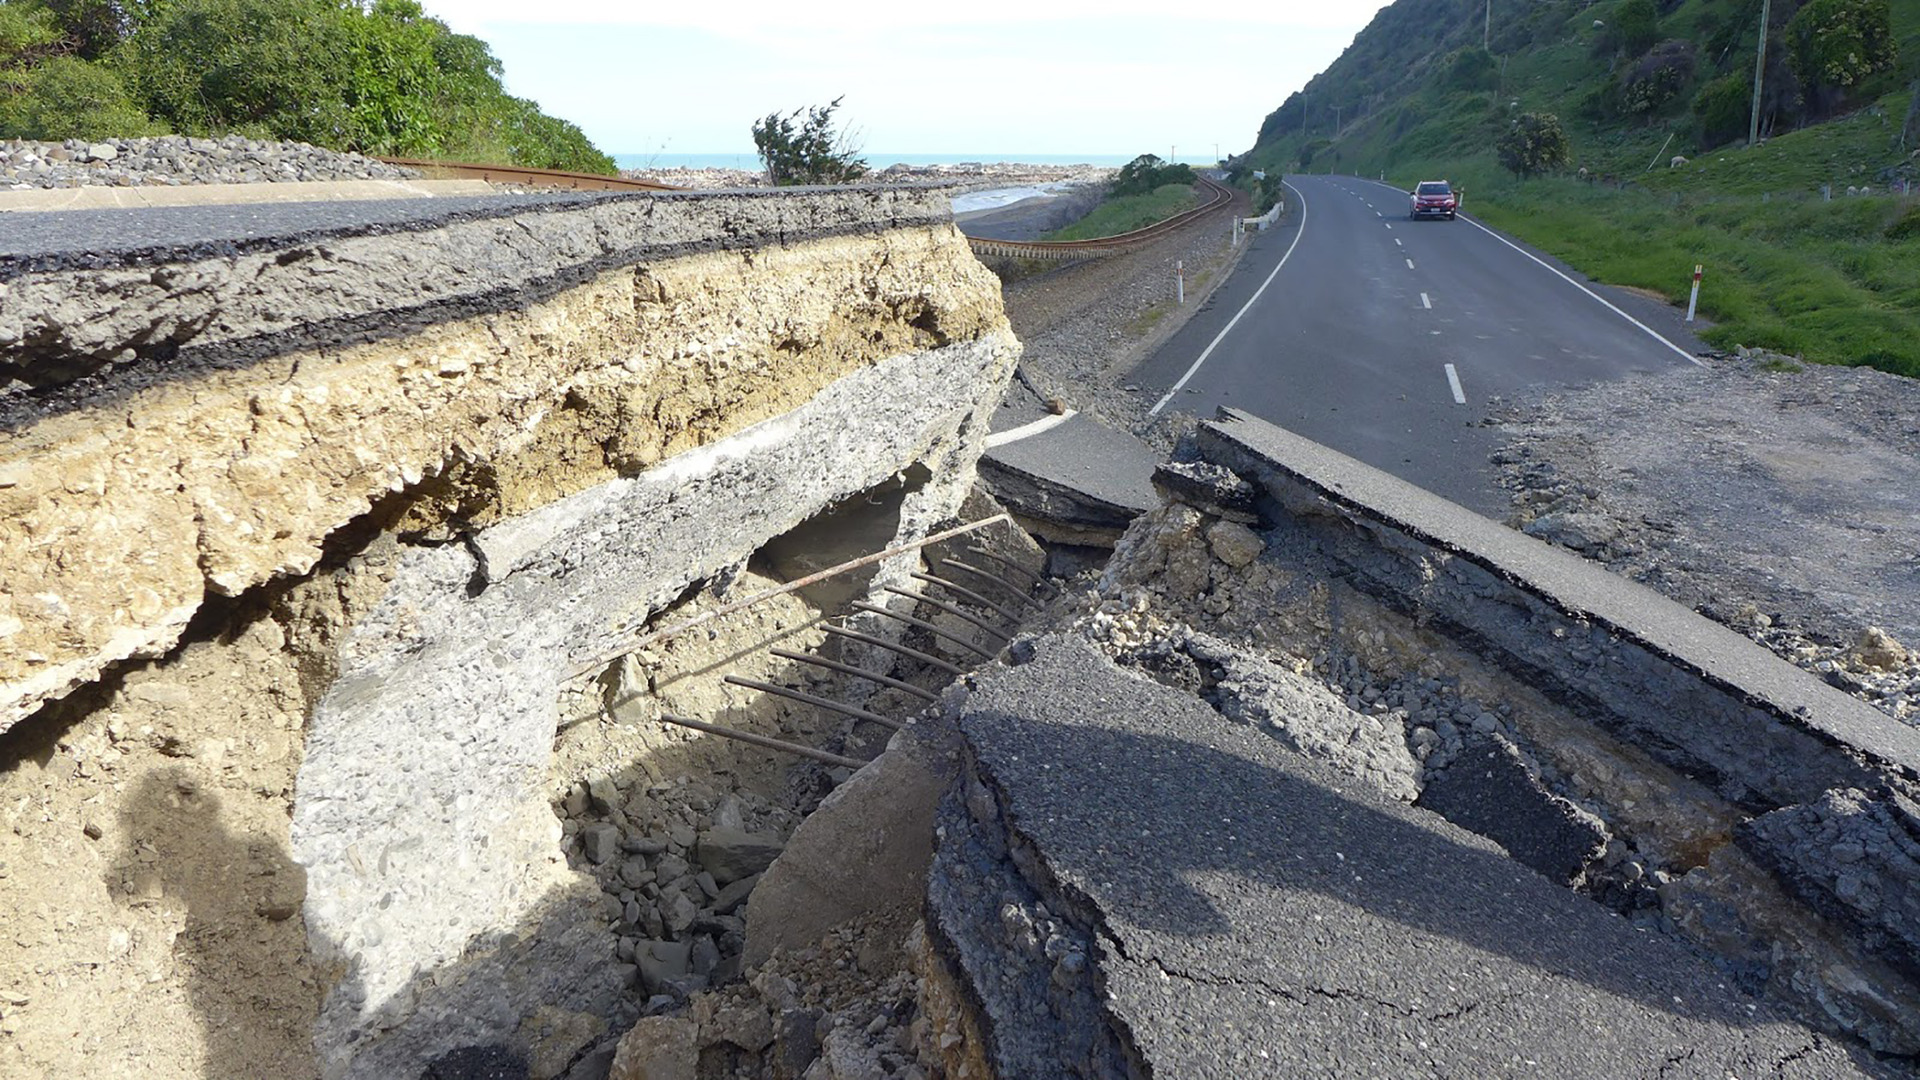 Scientists share research on Hikurangi subduction zone, earthquakes, tsunamis